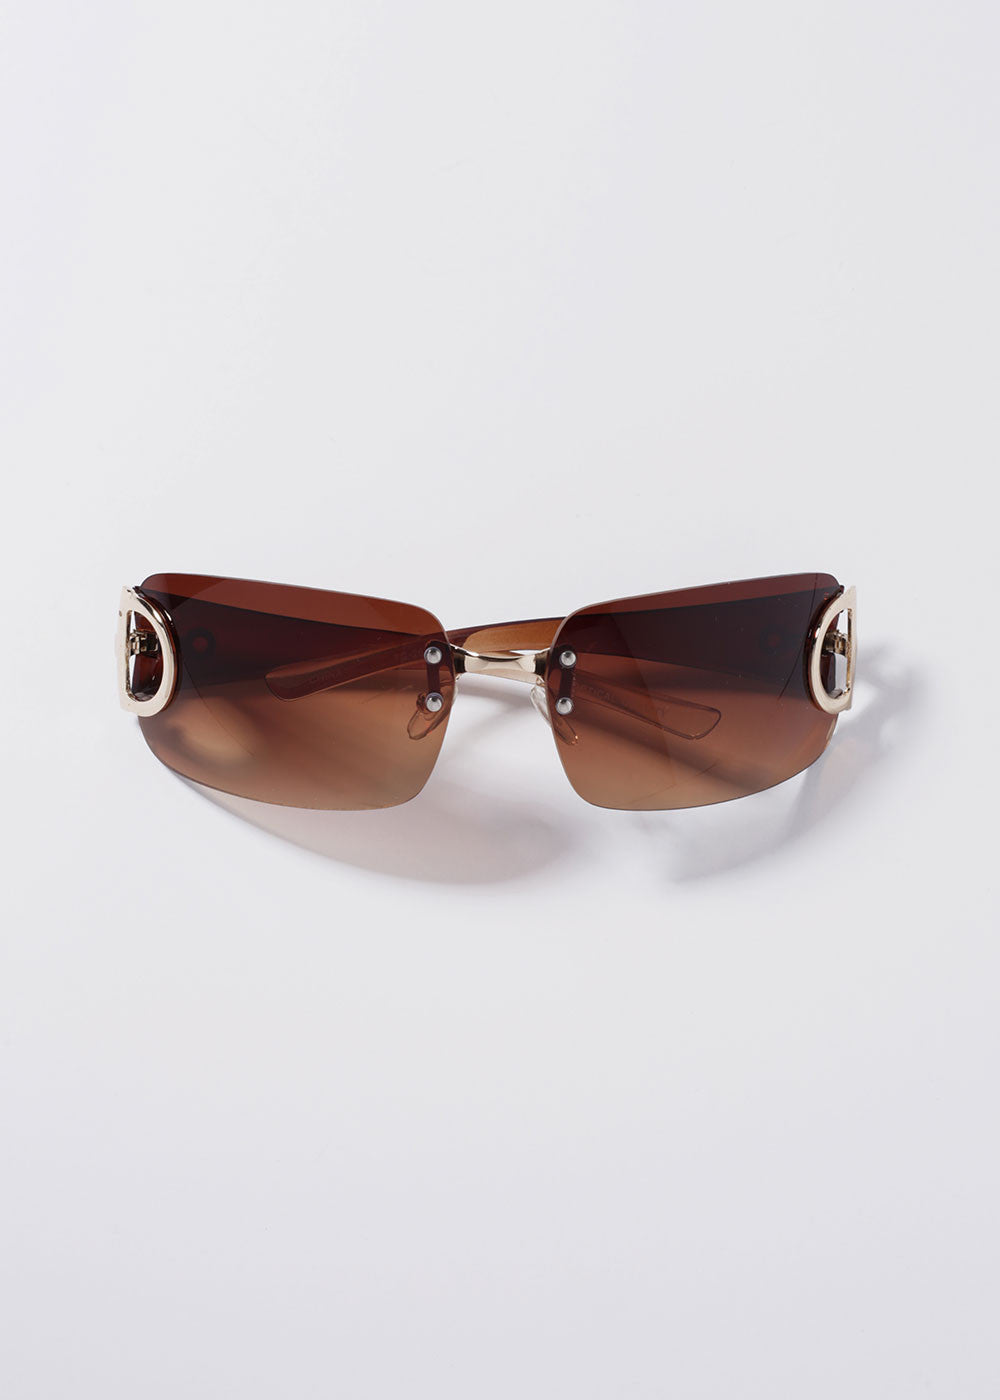 Rimless Design Sunglasses- Brown/Gold